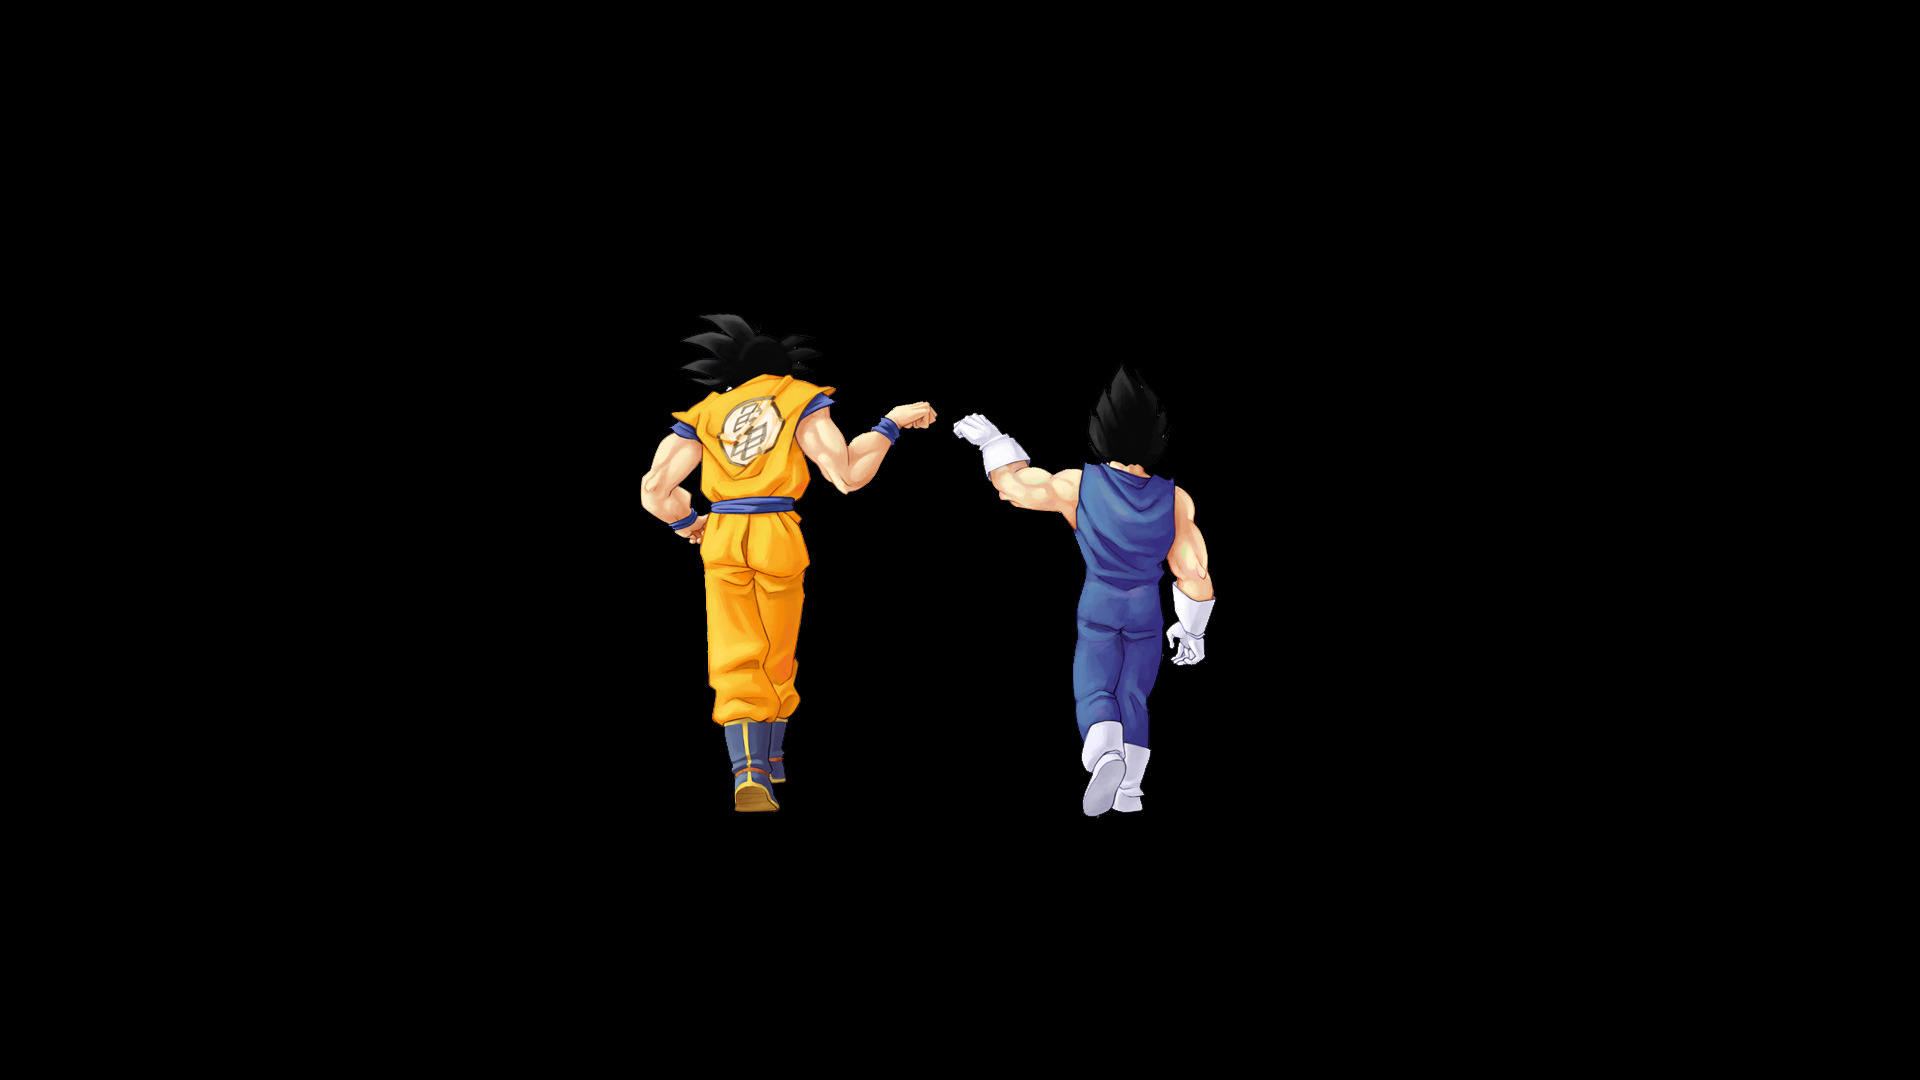 4934837748 further Best Goku Wallpaper Hd For Pc Dragon Ball Z in addition  furthermore Bape Wallpaper in addition Bape Wallpapers. on bape cartoon wallpapers computer